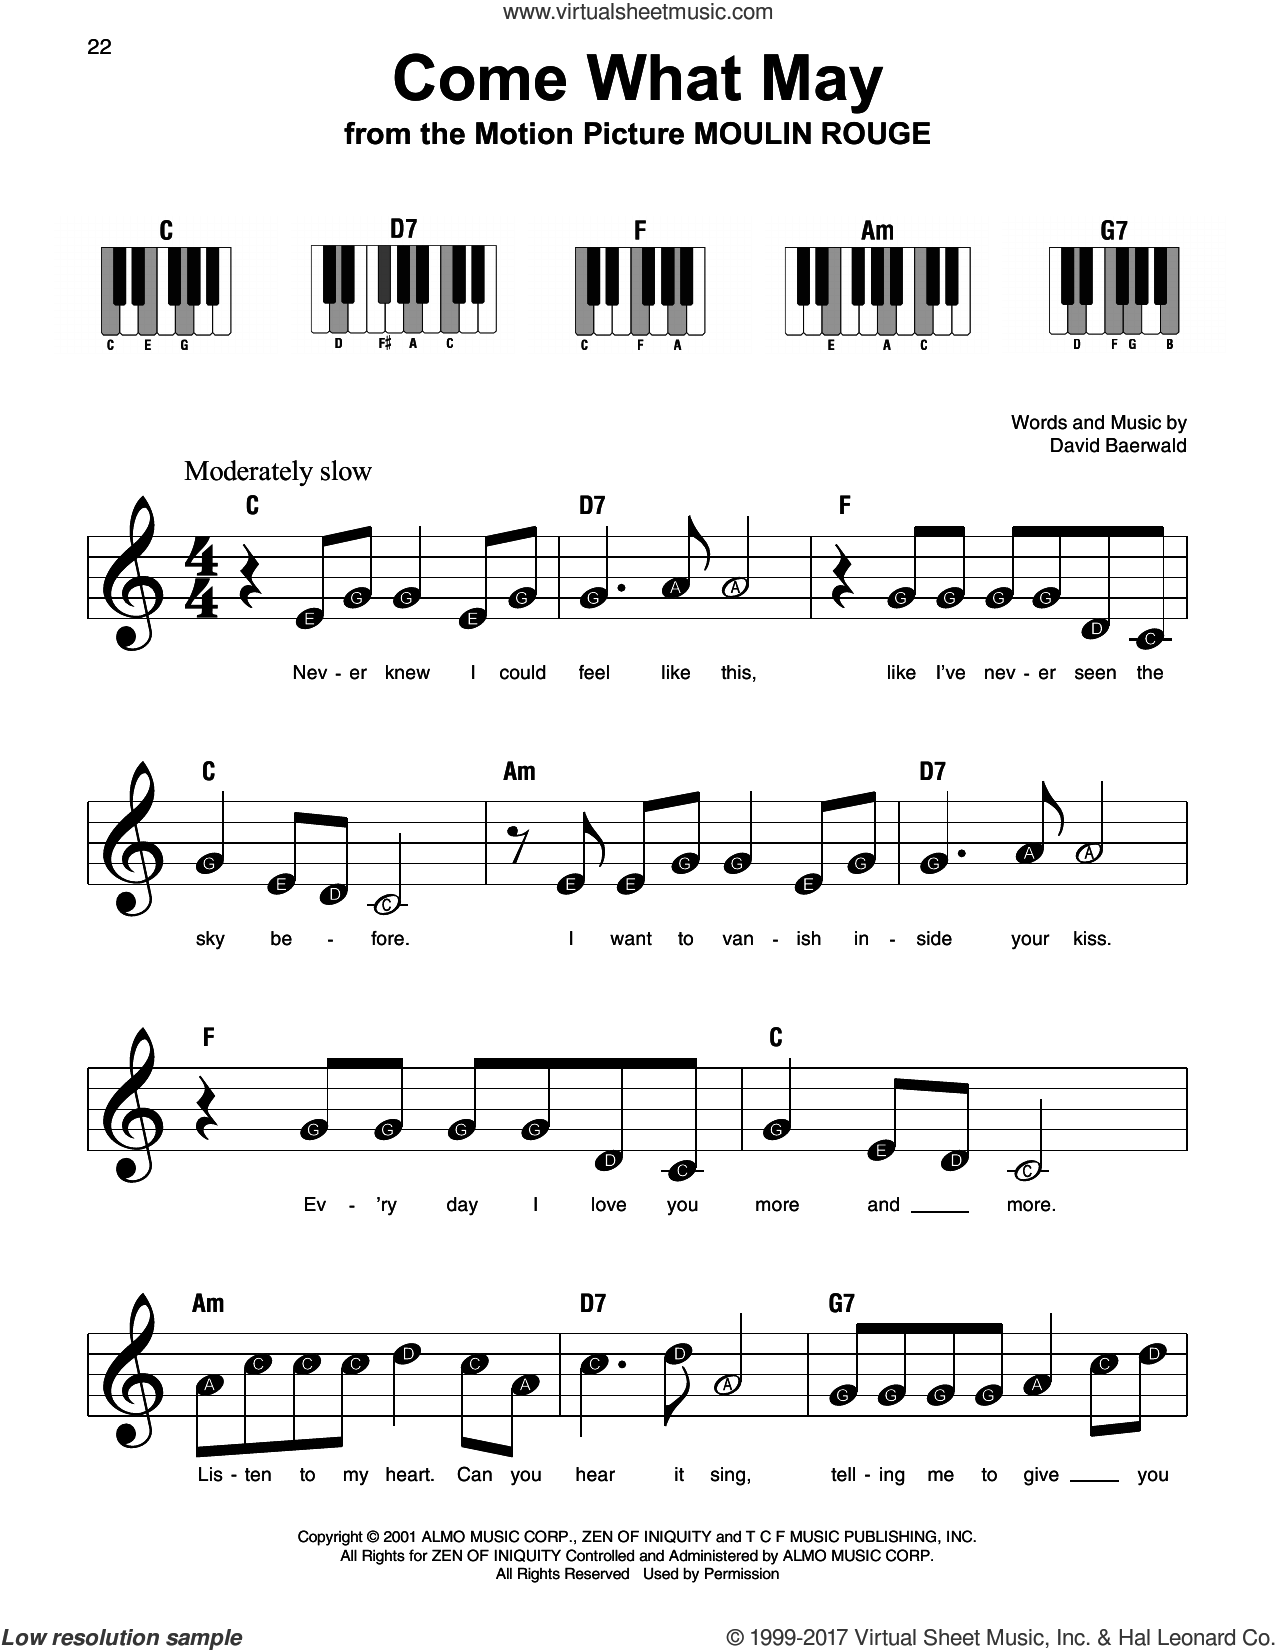 Come What May sheet music for piano solo by Nicole Kidman and Ewan McGregor and David Baerwald, beginner skill level